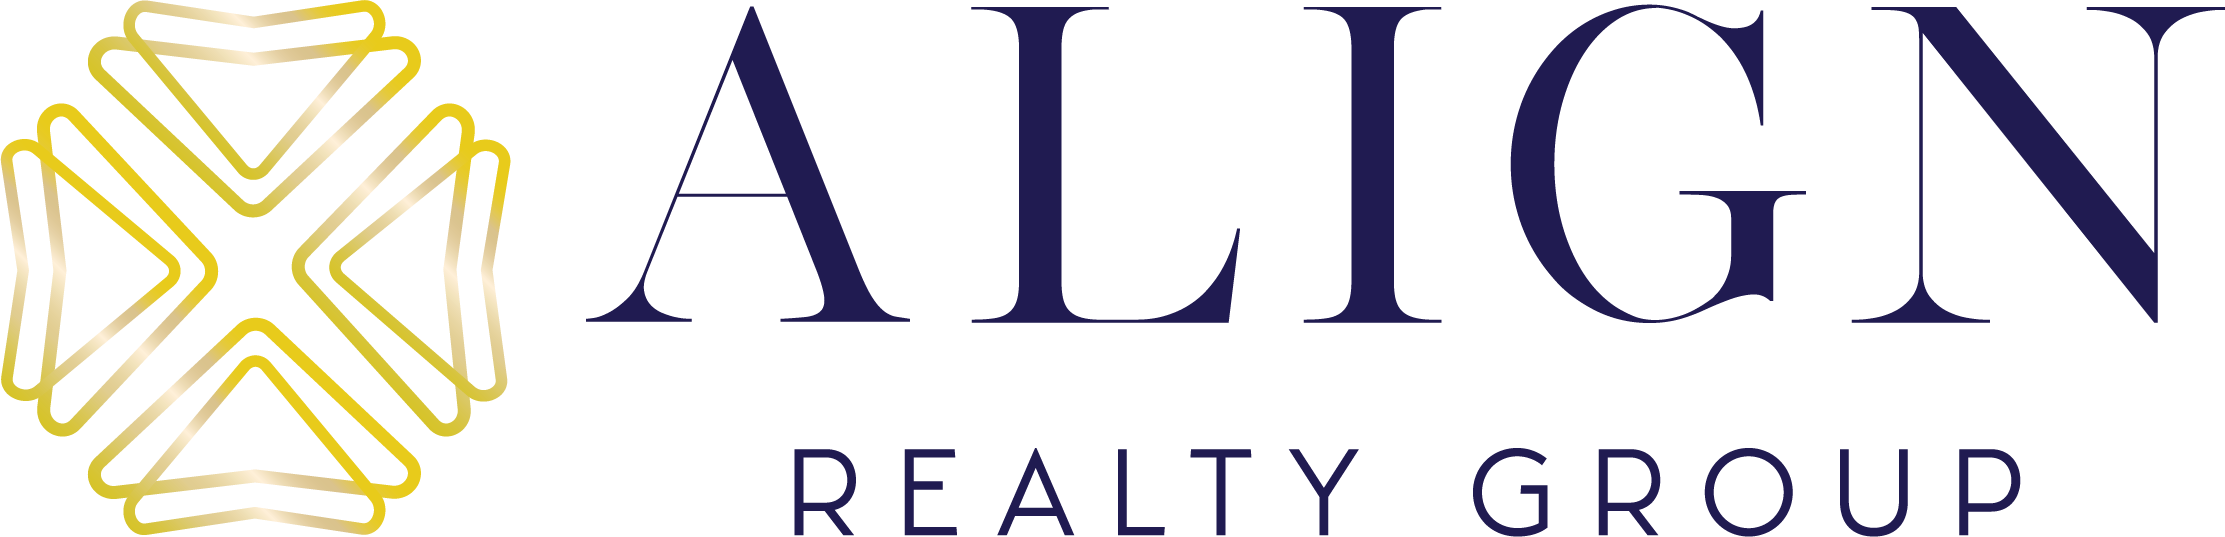 Align Realty Group